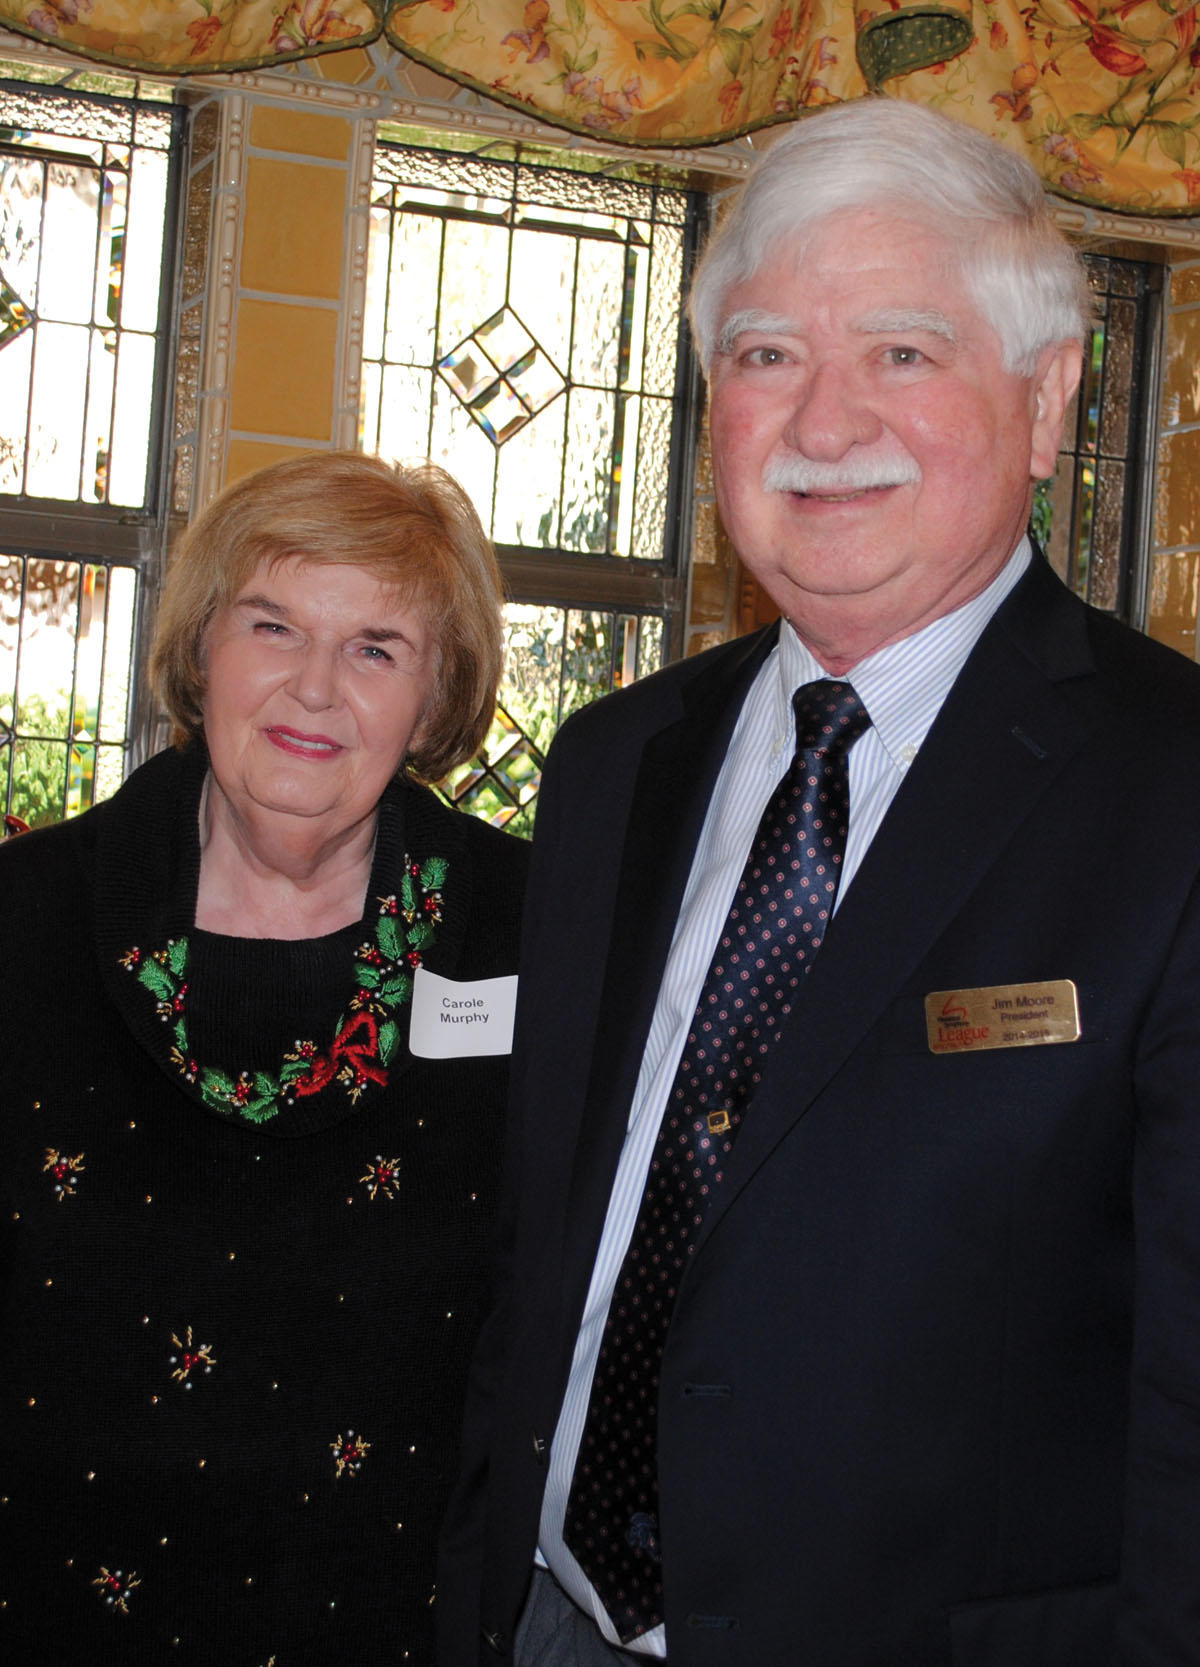 Hostess Carole Murphy and Houston Symphony League Bay Area President Jim Moore prepare to welcome the crowd to the group's Holiday Brunch at the Murphy home in Brook Forest.